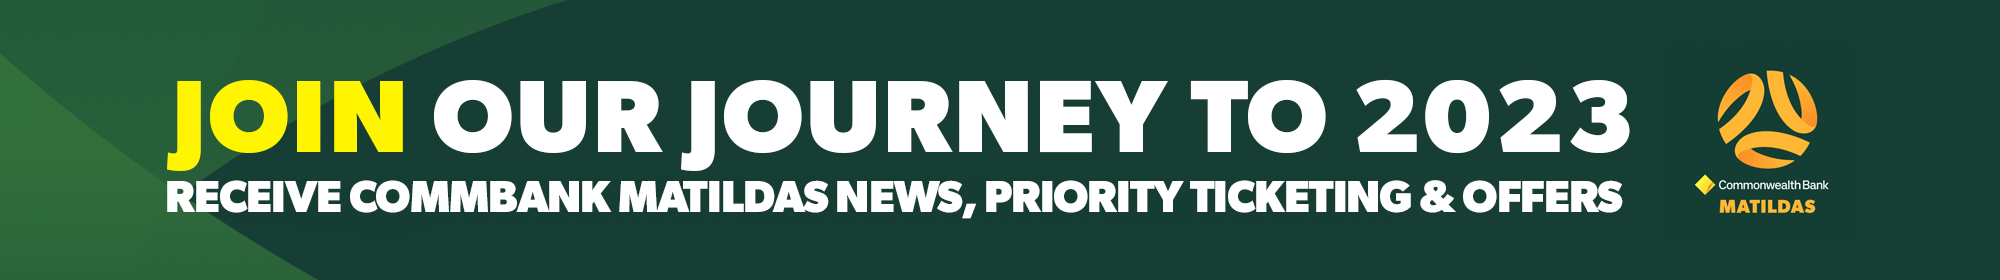 Journey to 2023 - Thin Banner